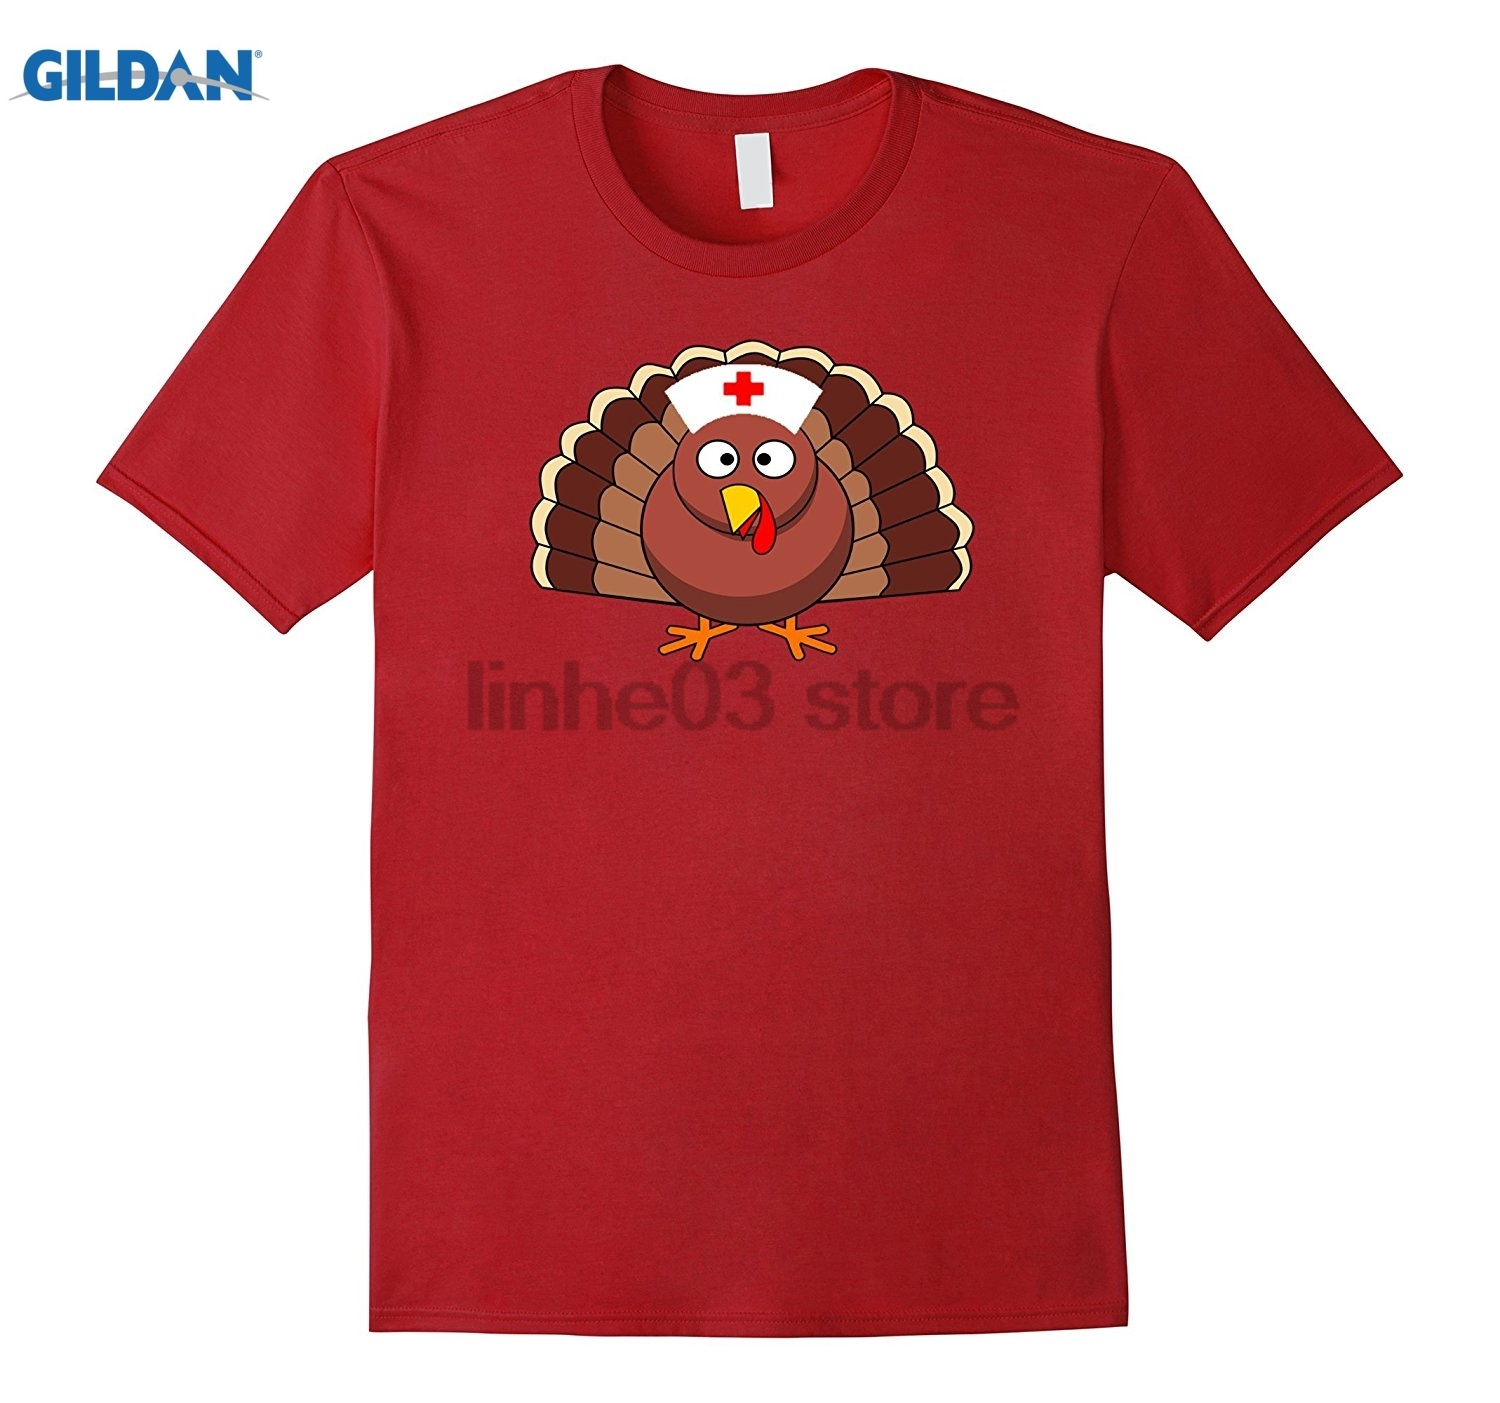 GILDAN Thanksgiving Turkey Nurse Funny Cute T-Shirt Tee glasses Womens T-shirt summer dress T-shirt